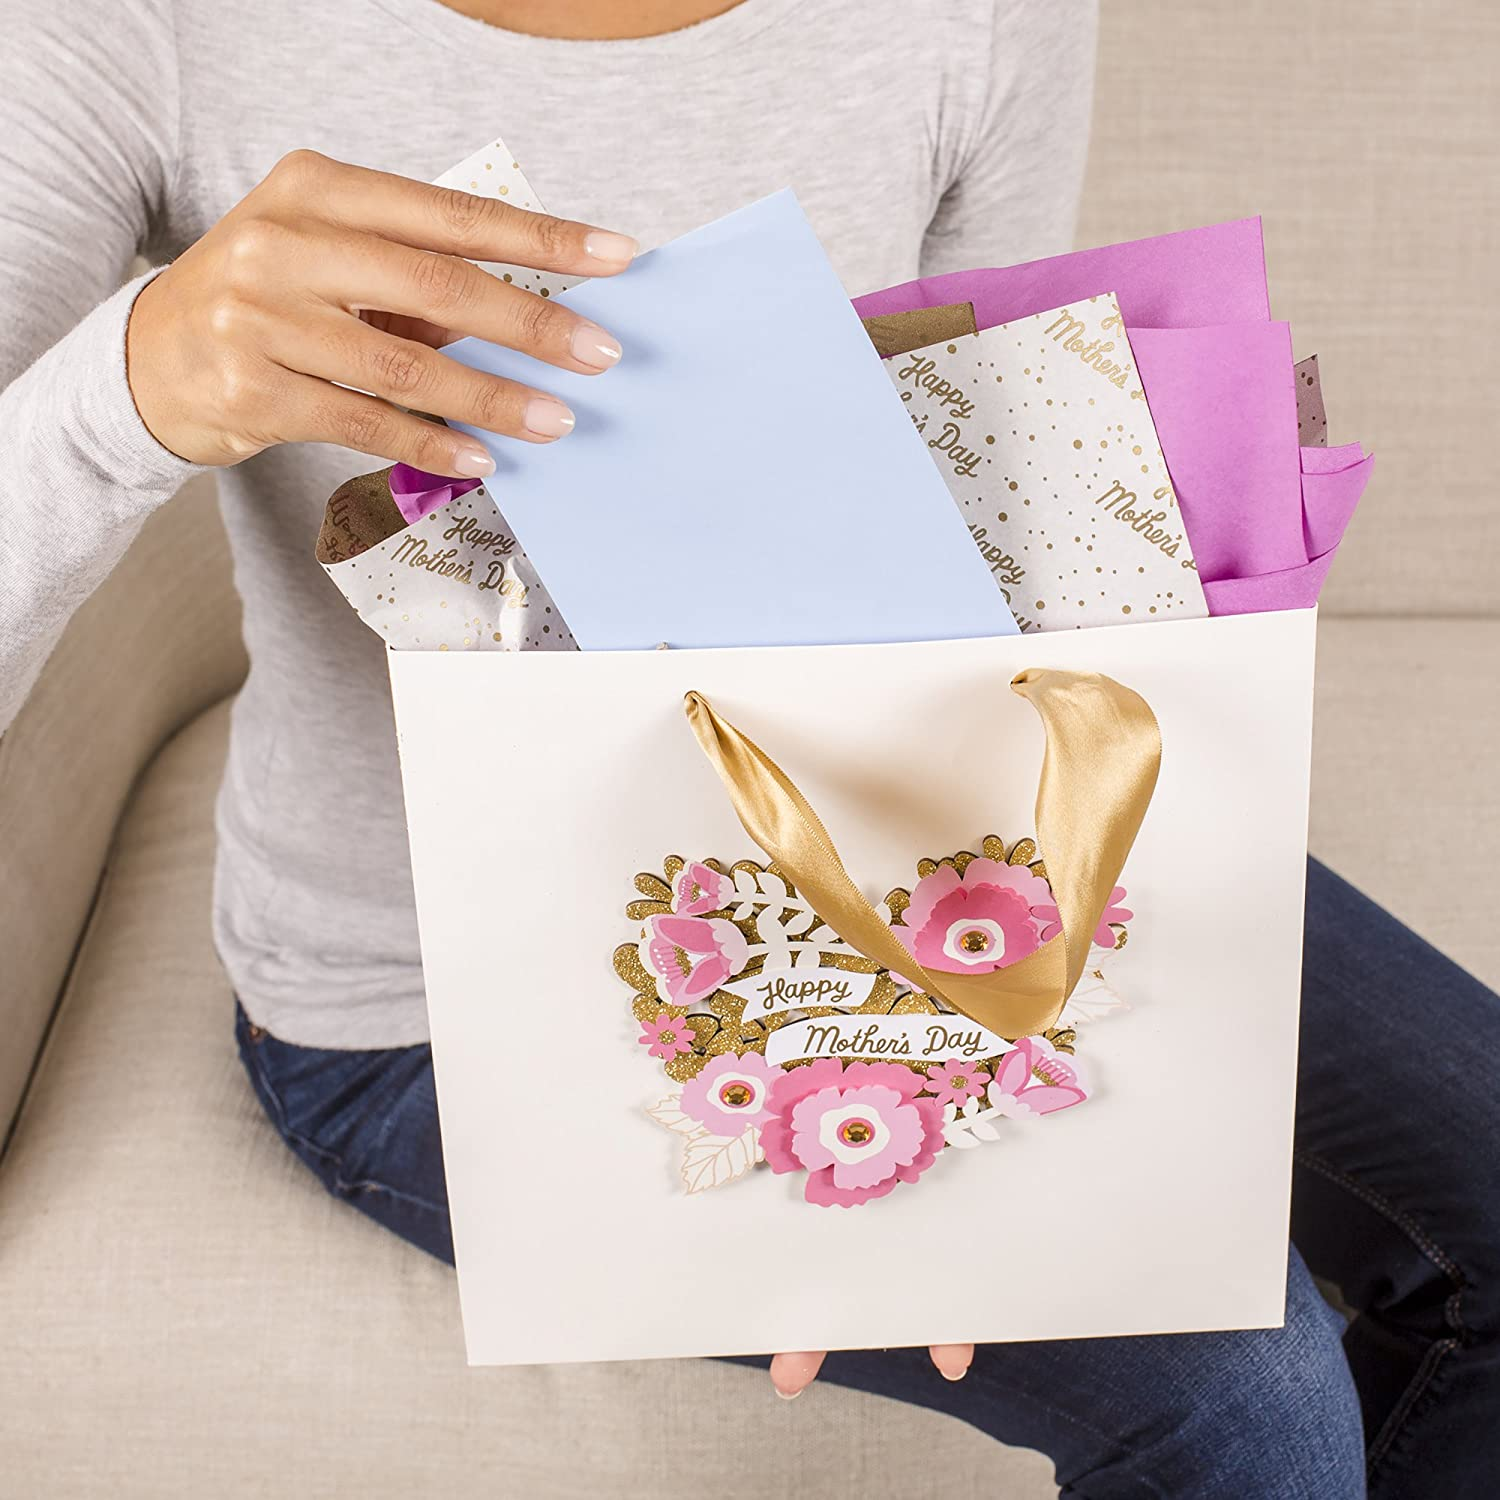 Hallmark Signature 10 Large Mothers Day Gift Bag with Tissue Paper Pink Floral Heart, Gold Glitter